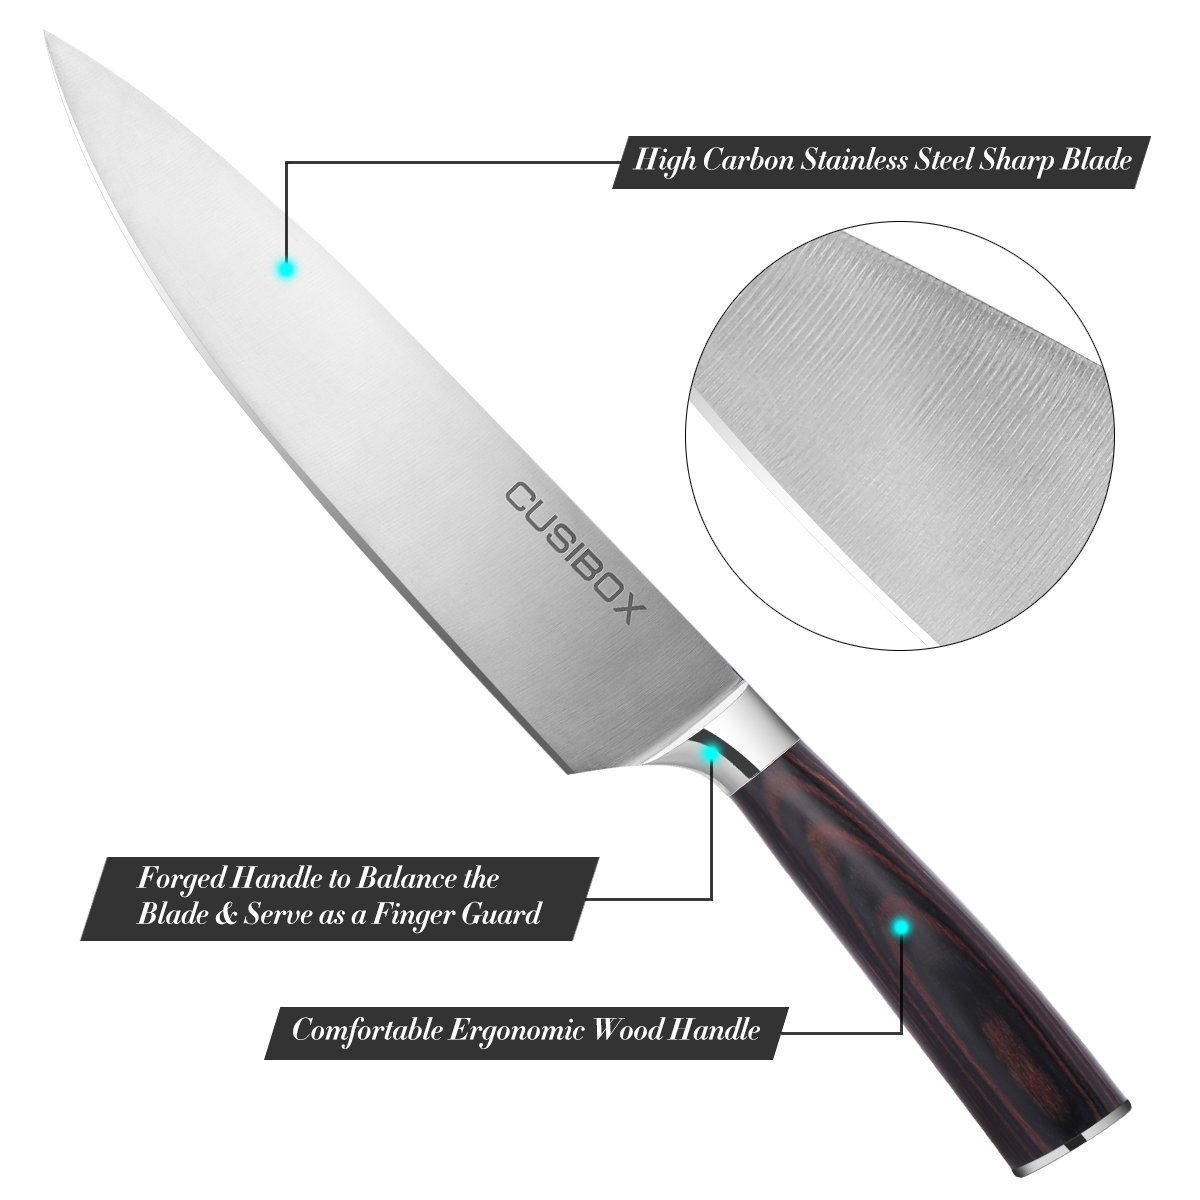 Chef Knife, CUSIBOX 8 inch Kitchen Knife with High Carbon Stainless Steel Razor Sharp Blade and Ergonomic Handle for Home and Restaurant